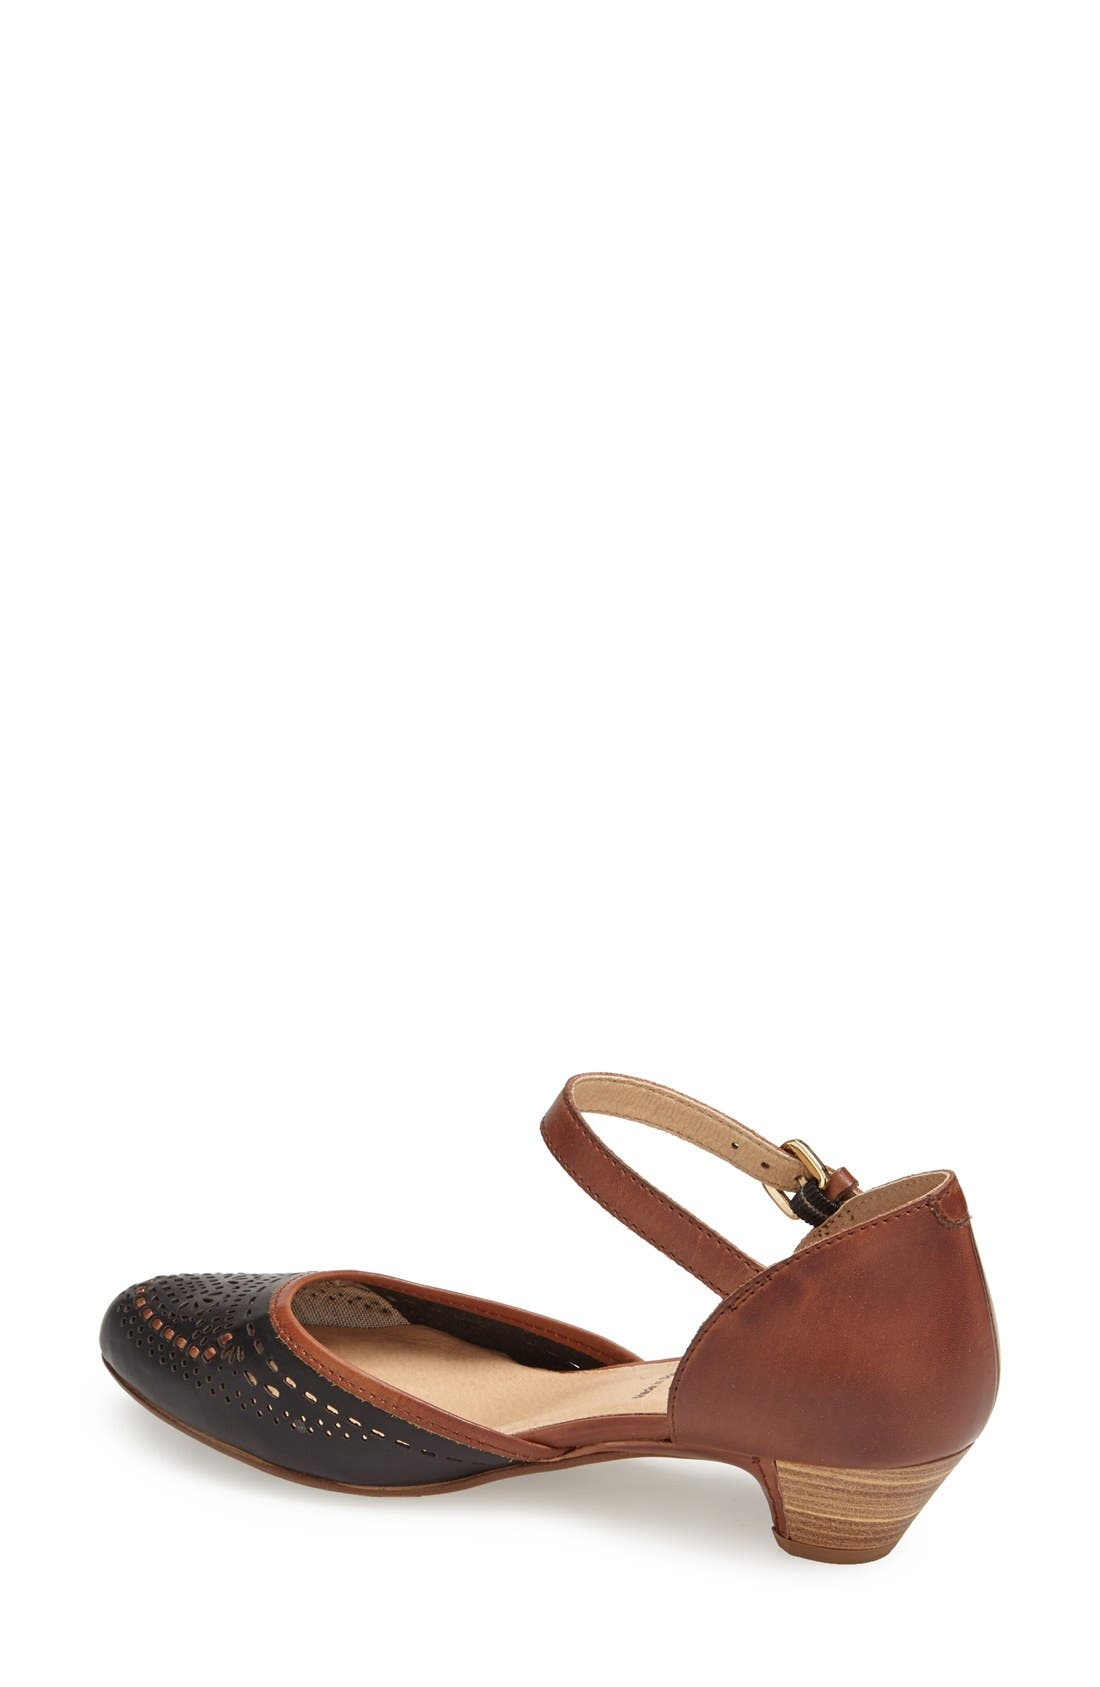 'Elba' Perforated Leather Ankle Strap Sandal,                             Alternate thumbnail 5, color,